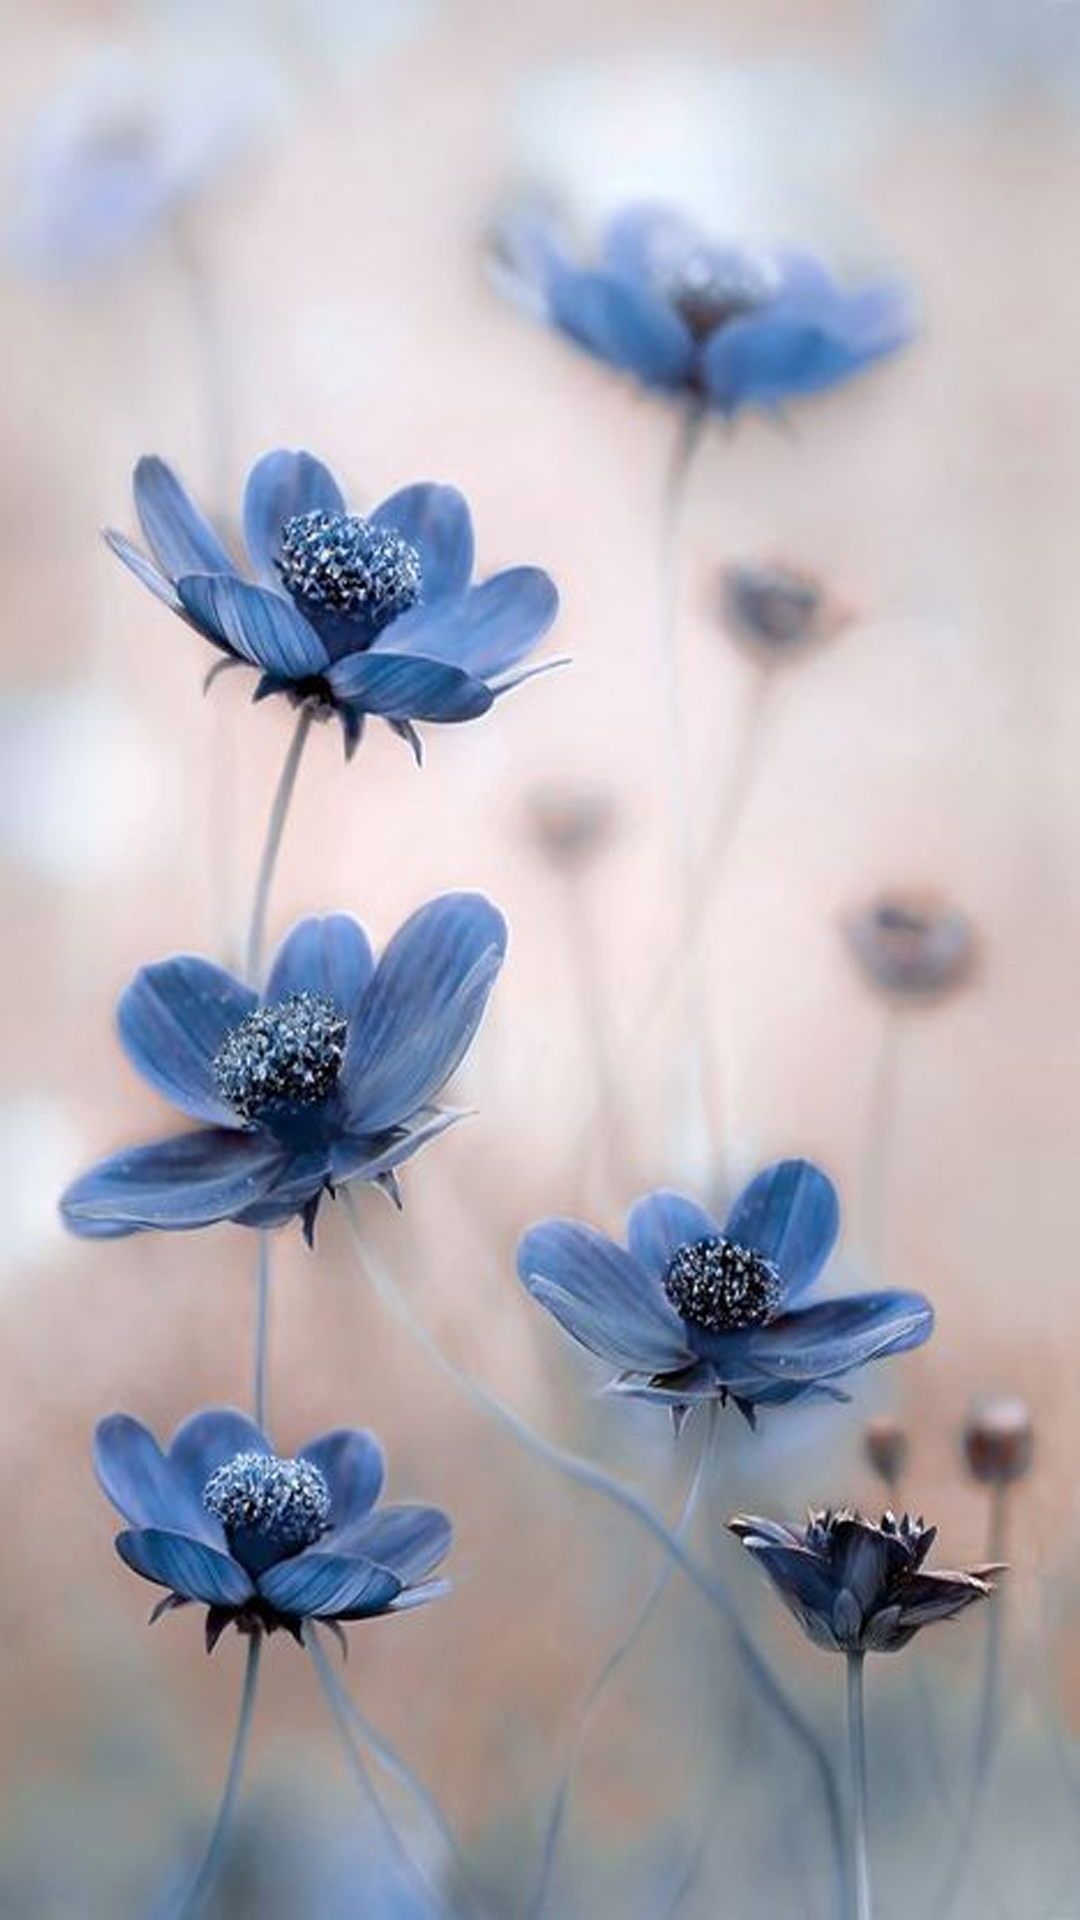 Blue Flowers Hd Mobile Wallpaper Hd Samsung Galaxy J2 2152118 Hd Wallpaper Backgrounds Download